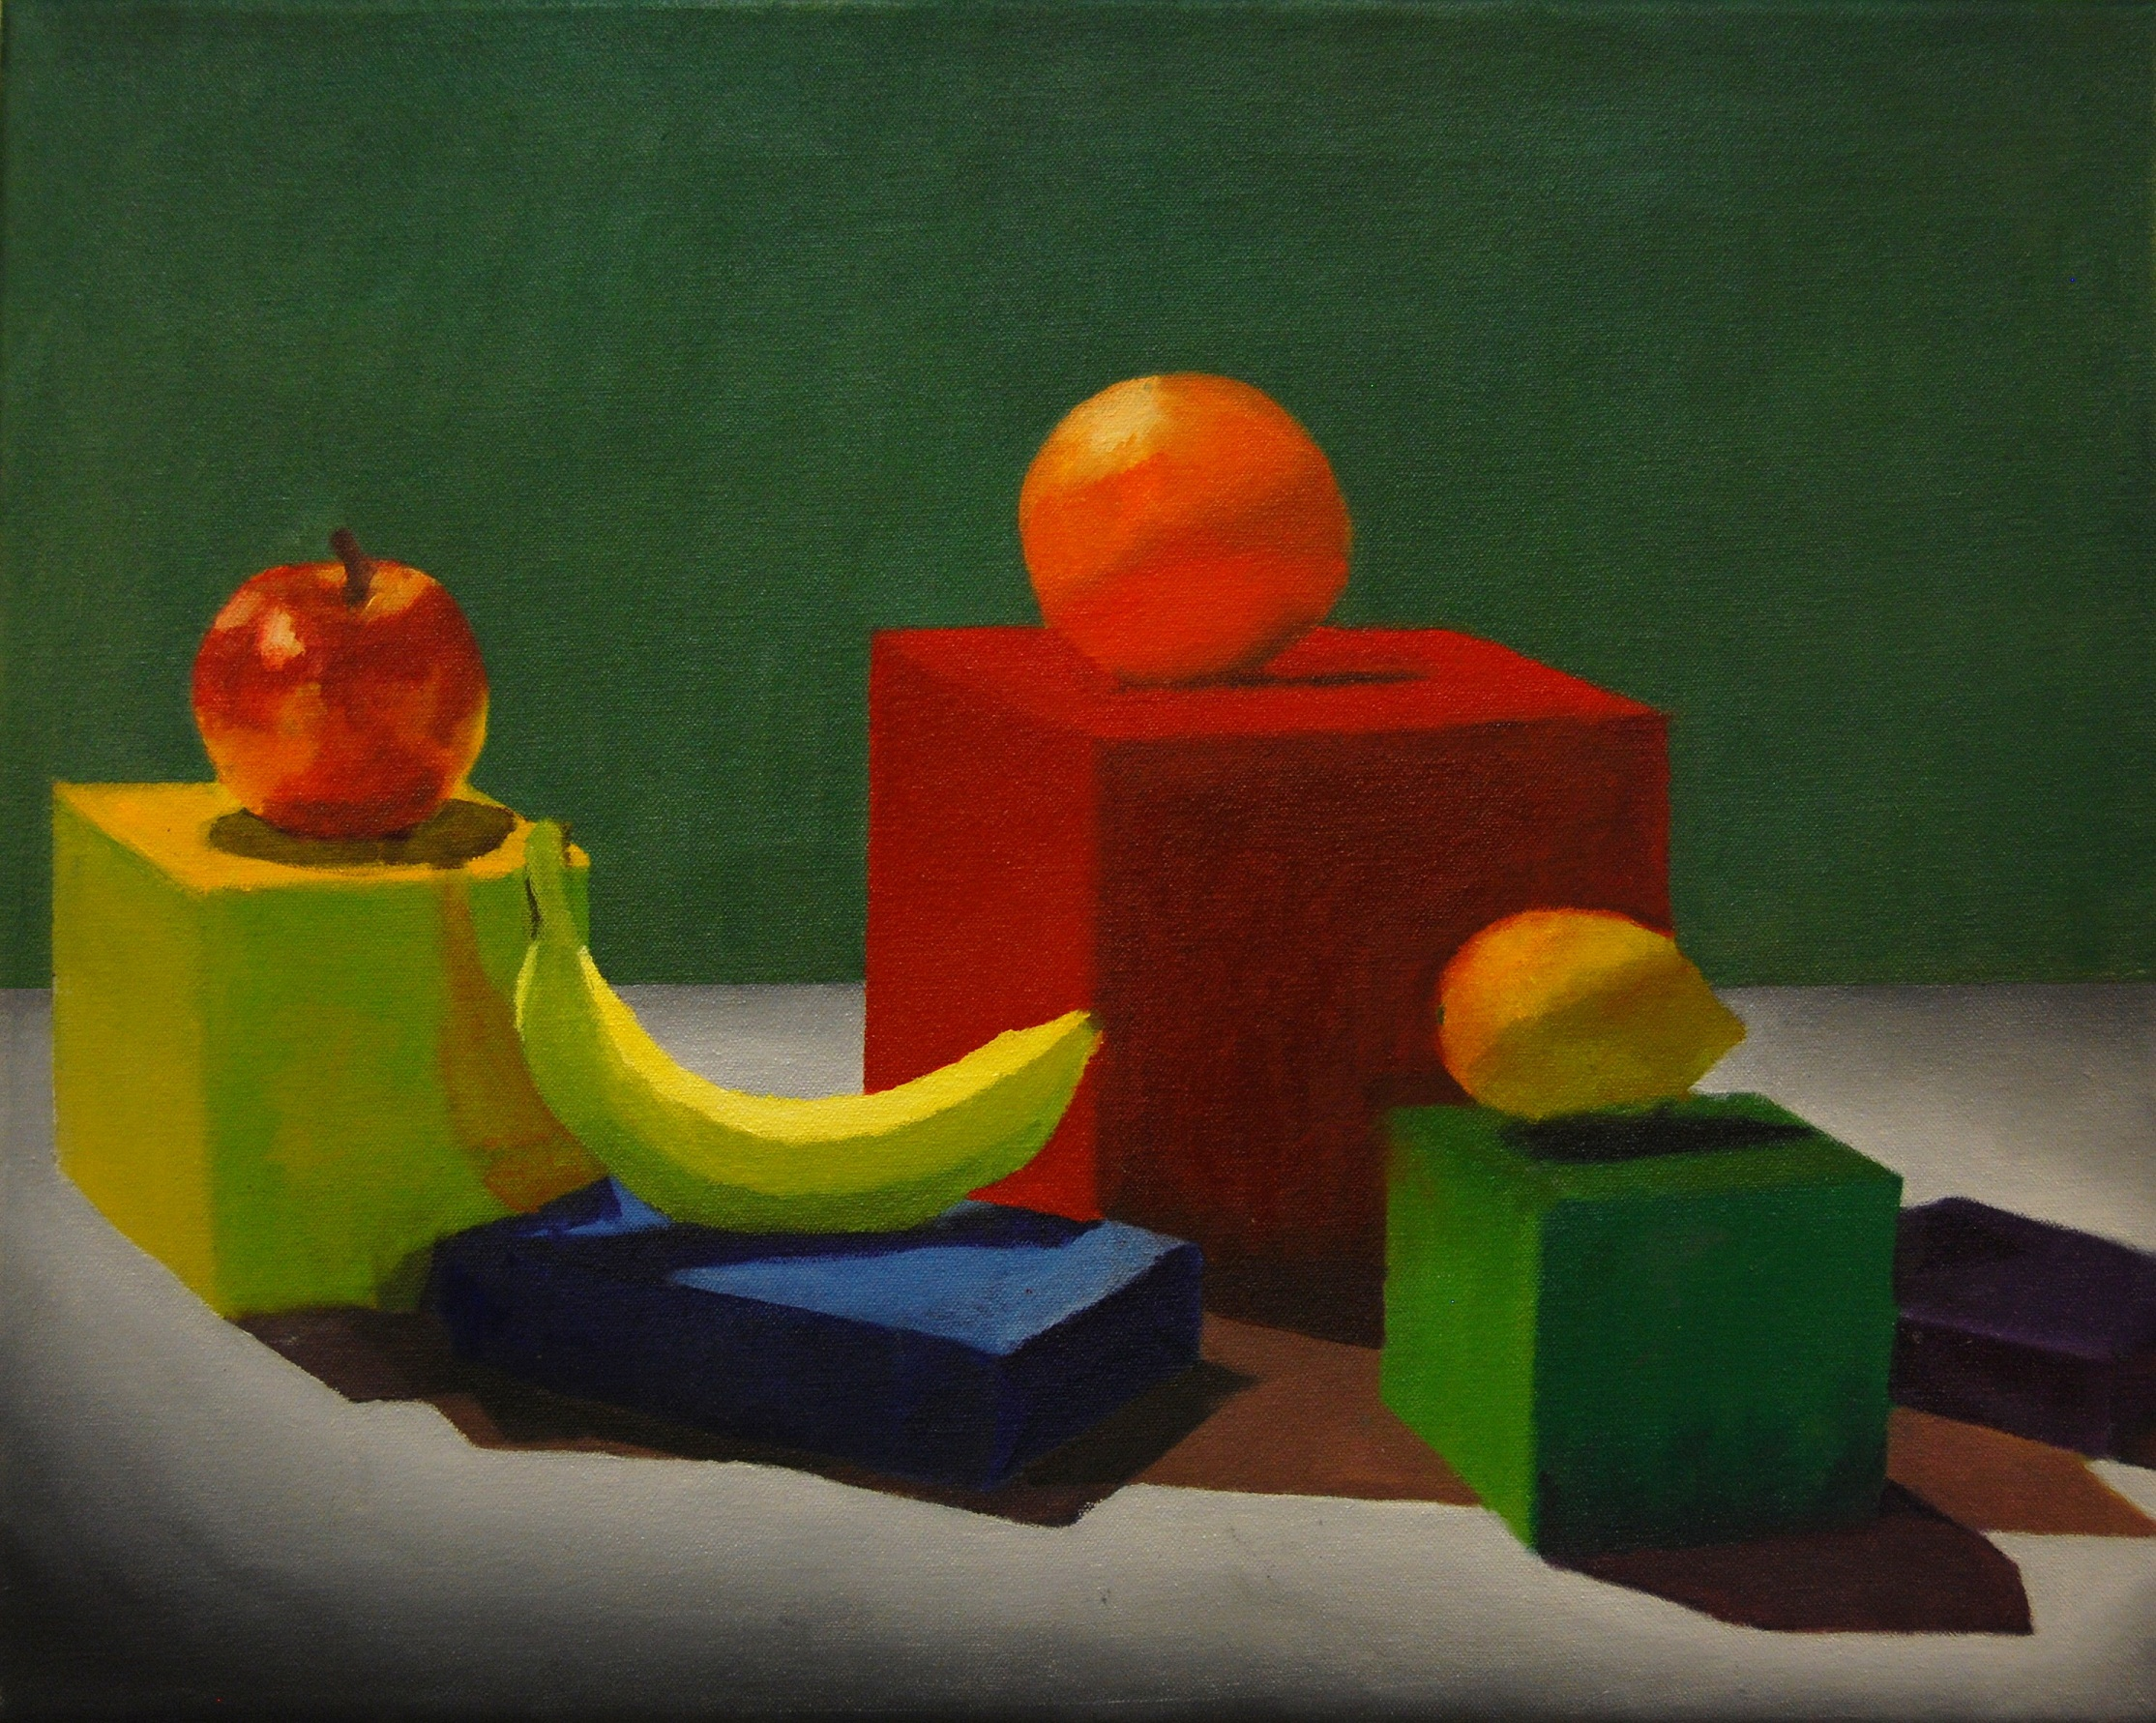 Still Life: Boxes and Fruit